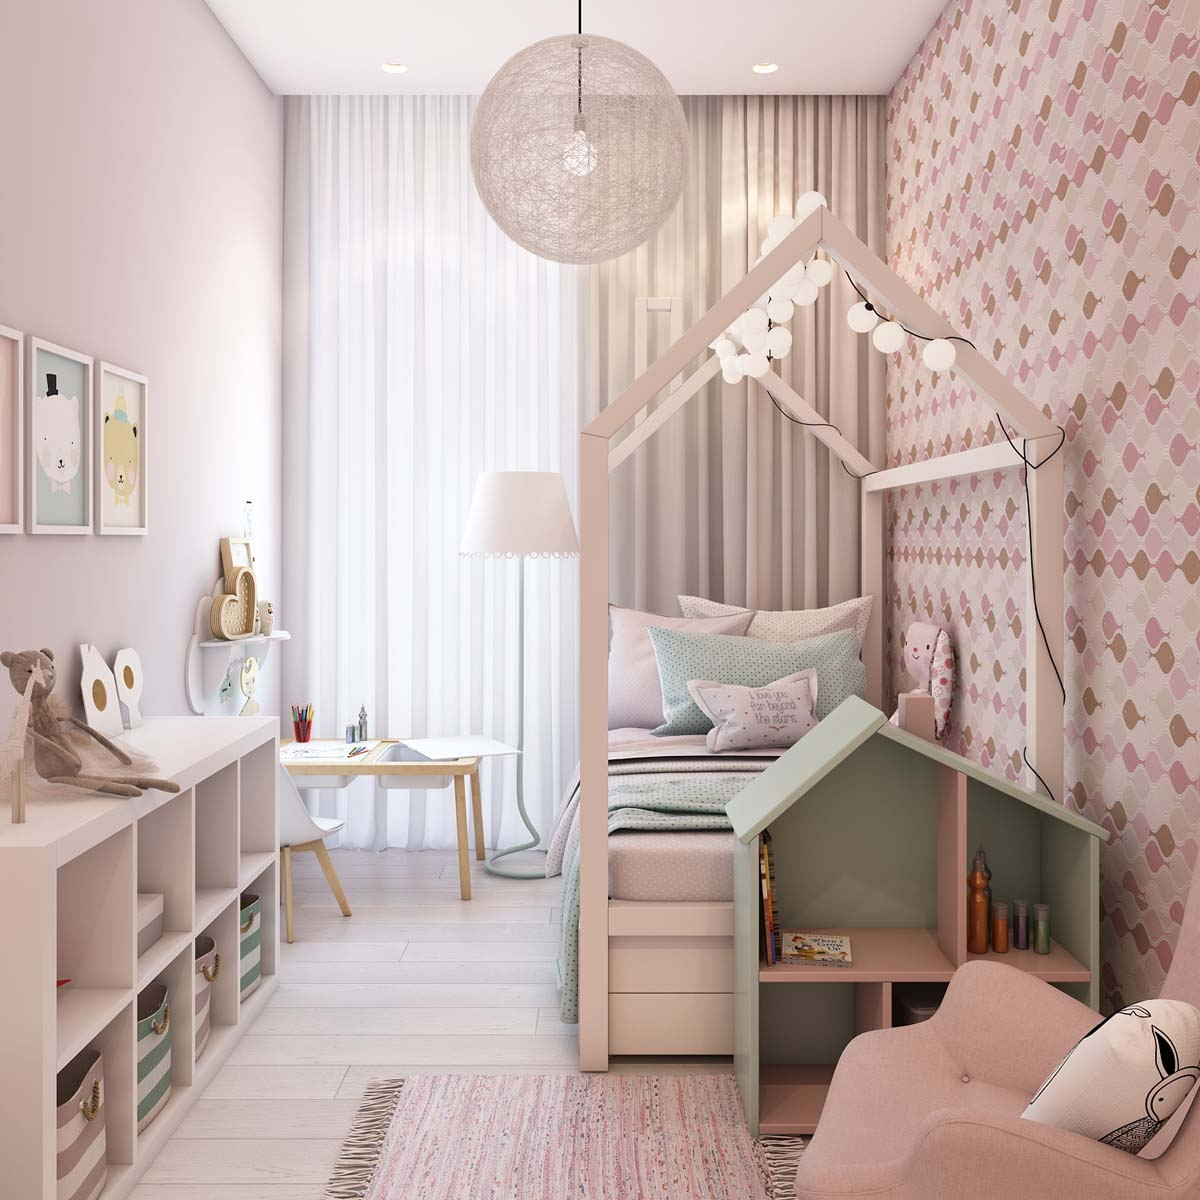 Kids Beds - A simple modern apartment in moscow